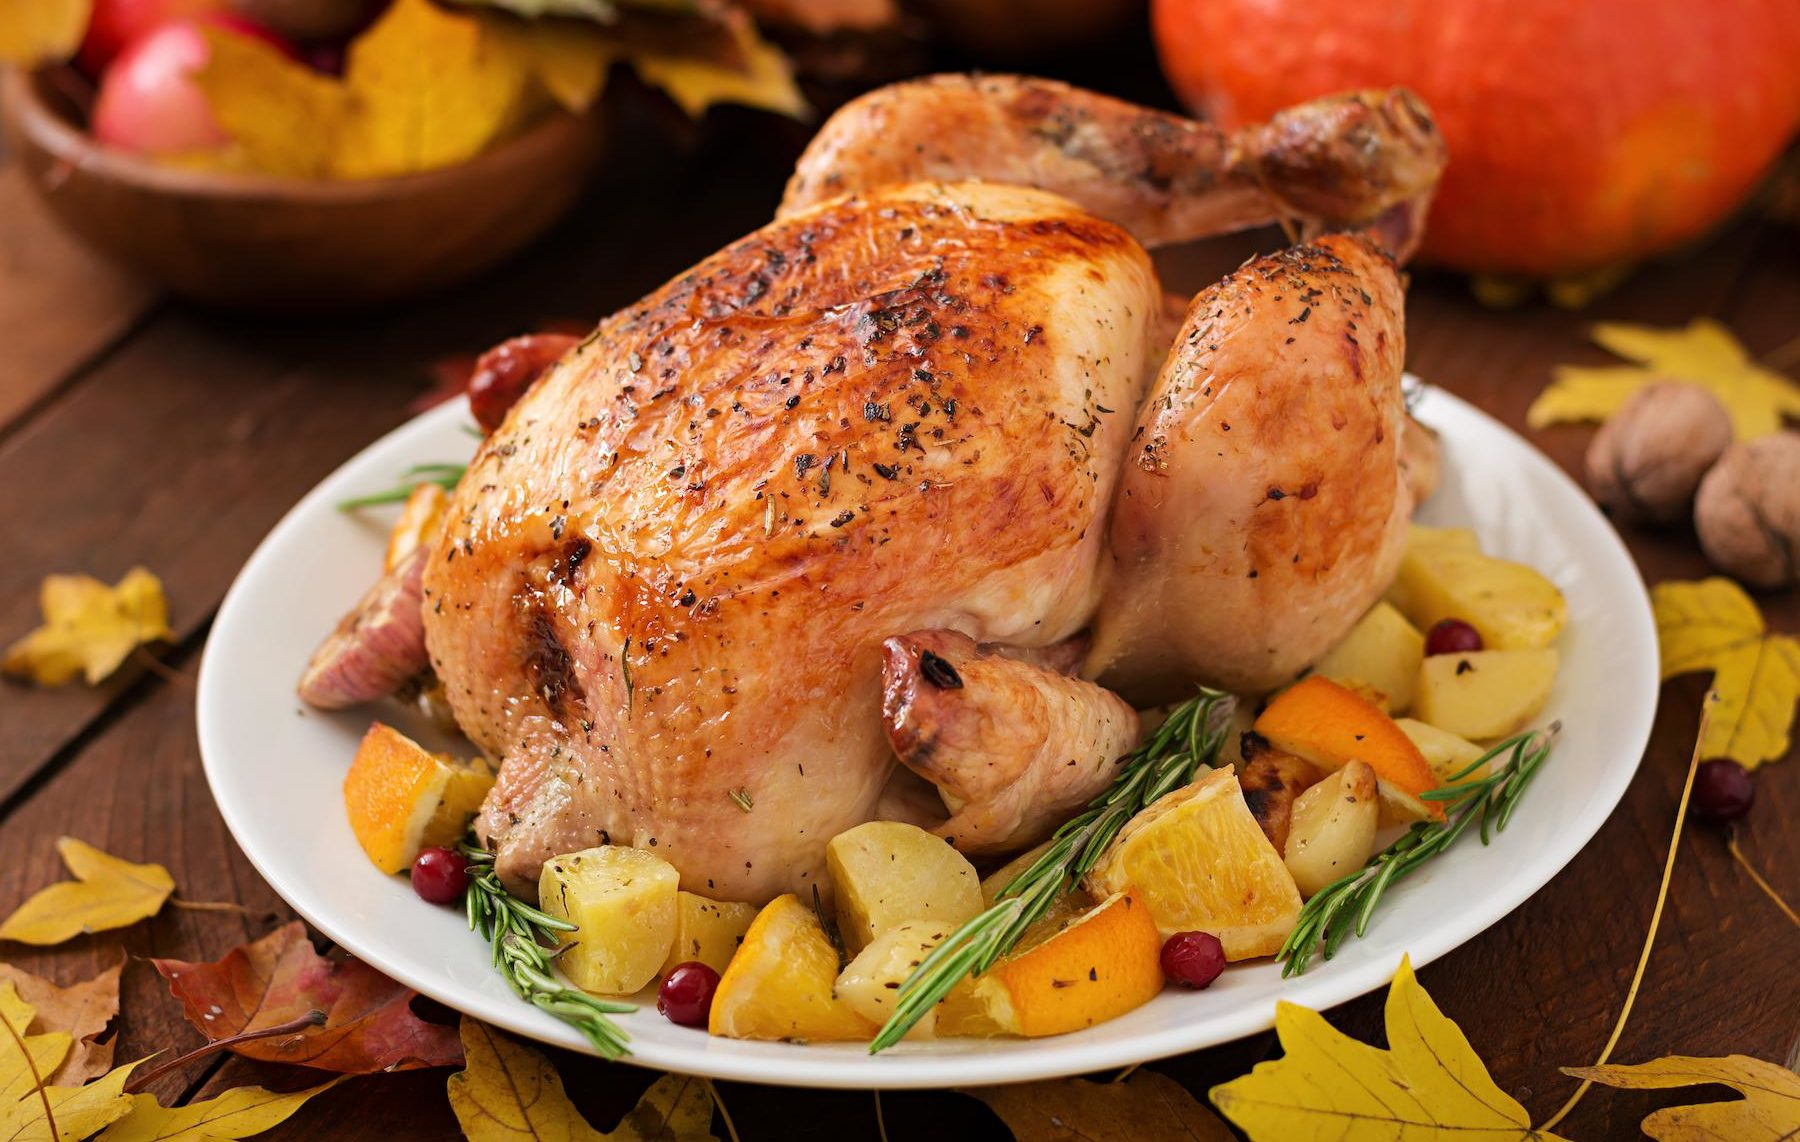 Marukan Roasted Turkey with Apple Cider Vinegar Brine